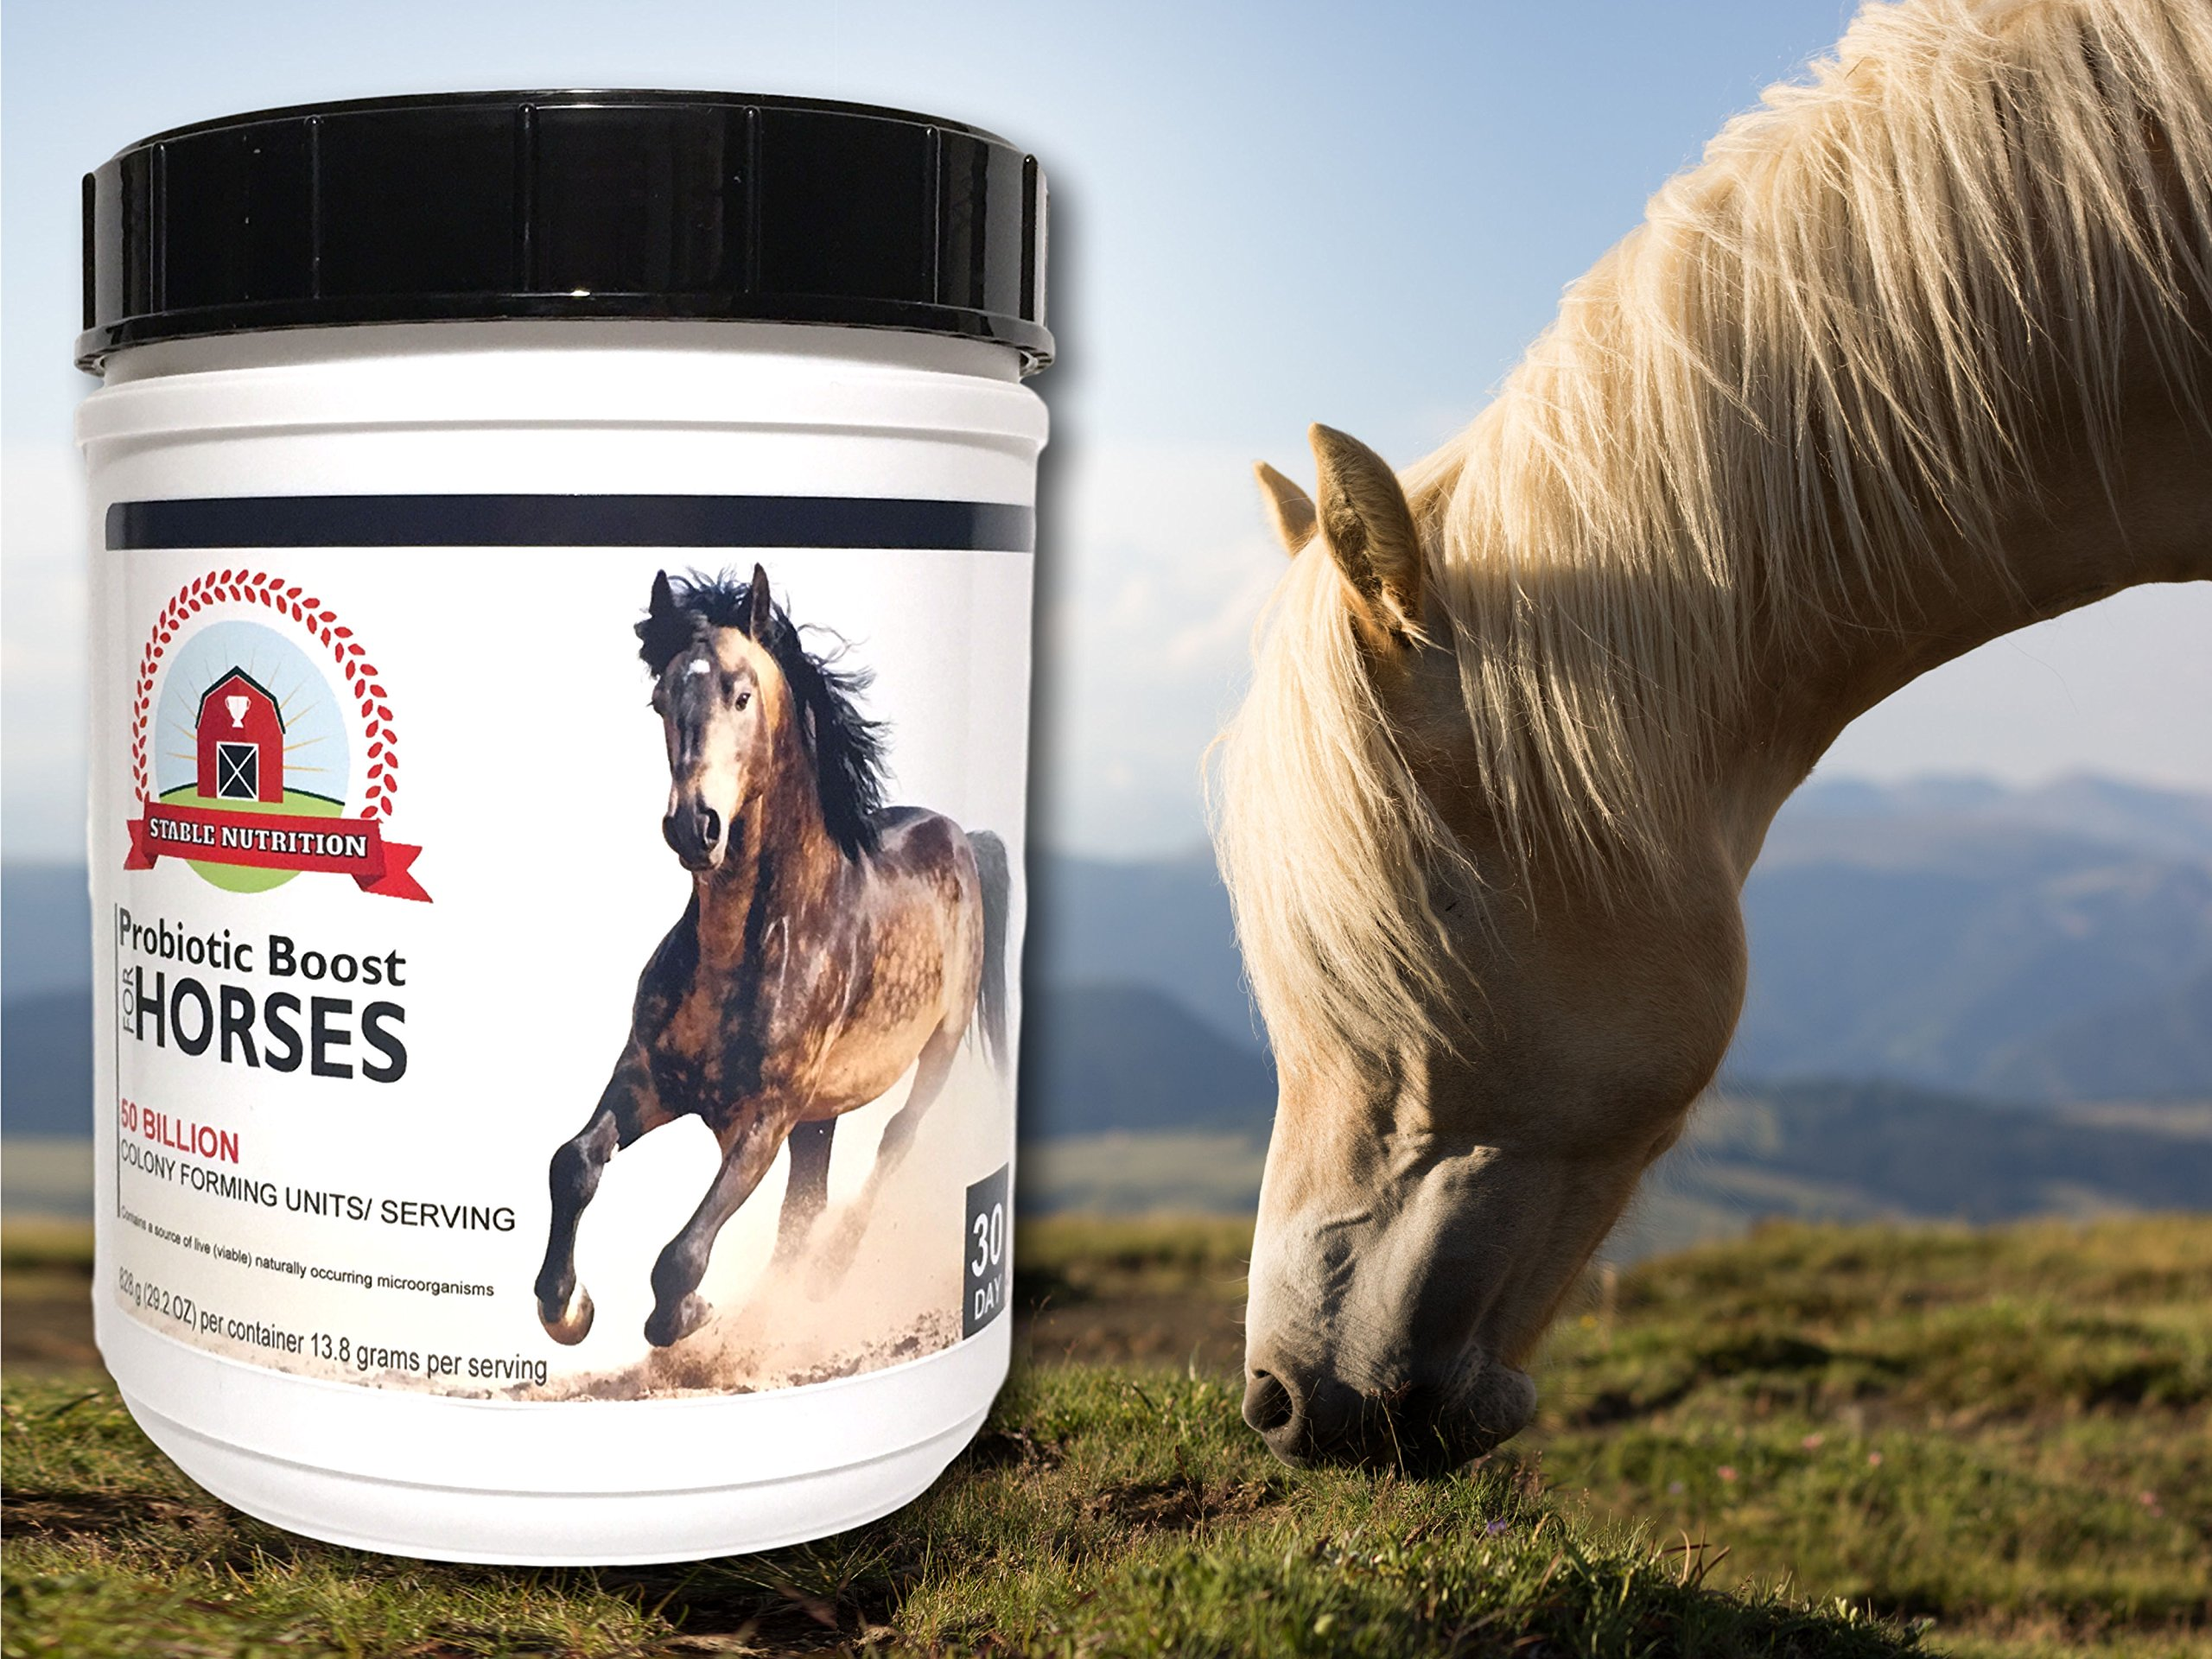 Stable Nutrition PROBIOTIC BOOST for Horses (30 Day) Equine Digestion Support Supplement for After Deworming and During Antibiotics - Digestive System Recovery Aid by Stable Nutrition (Image #3)